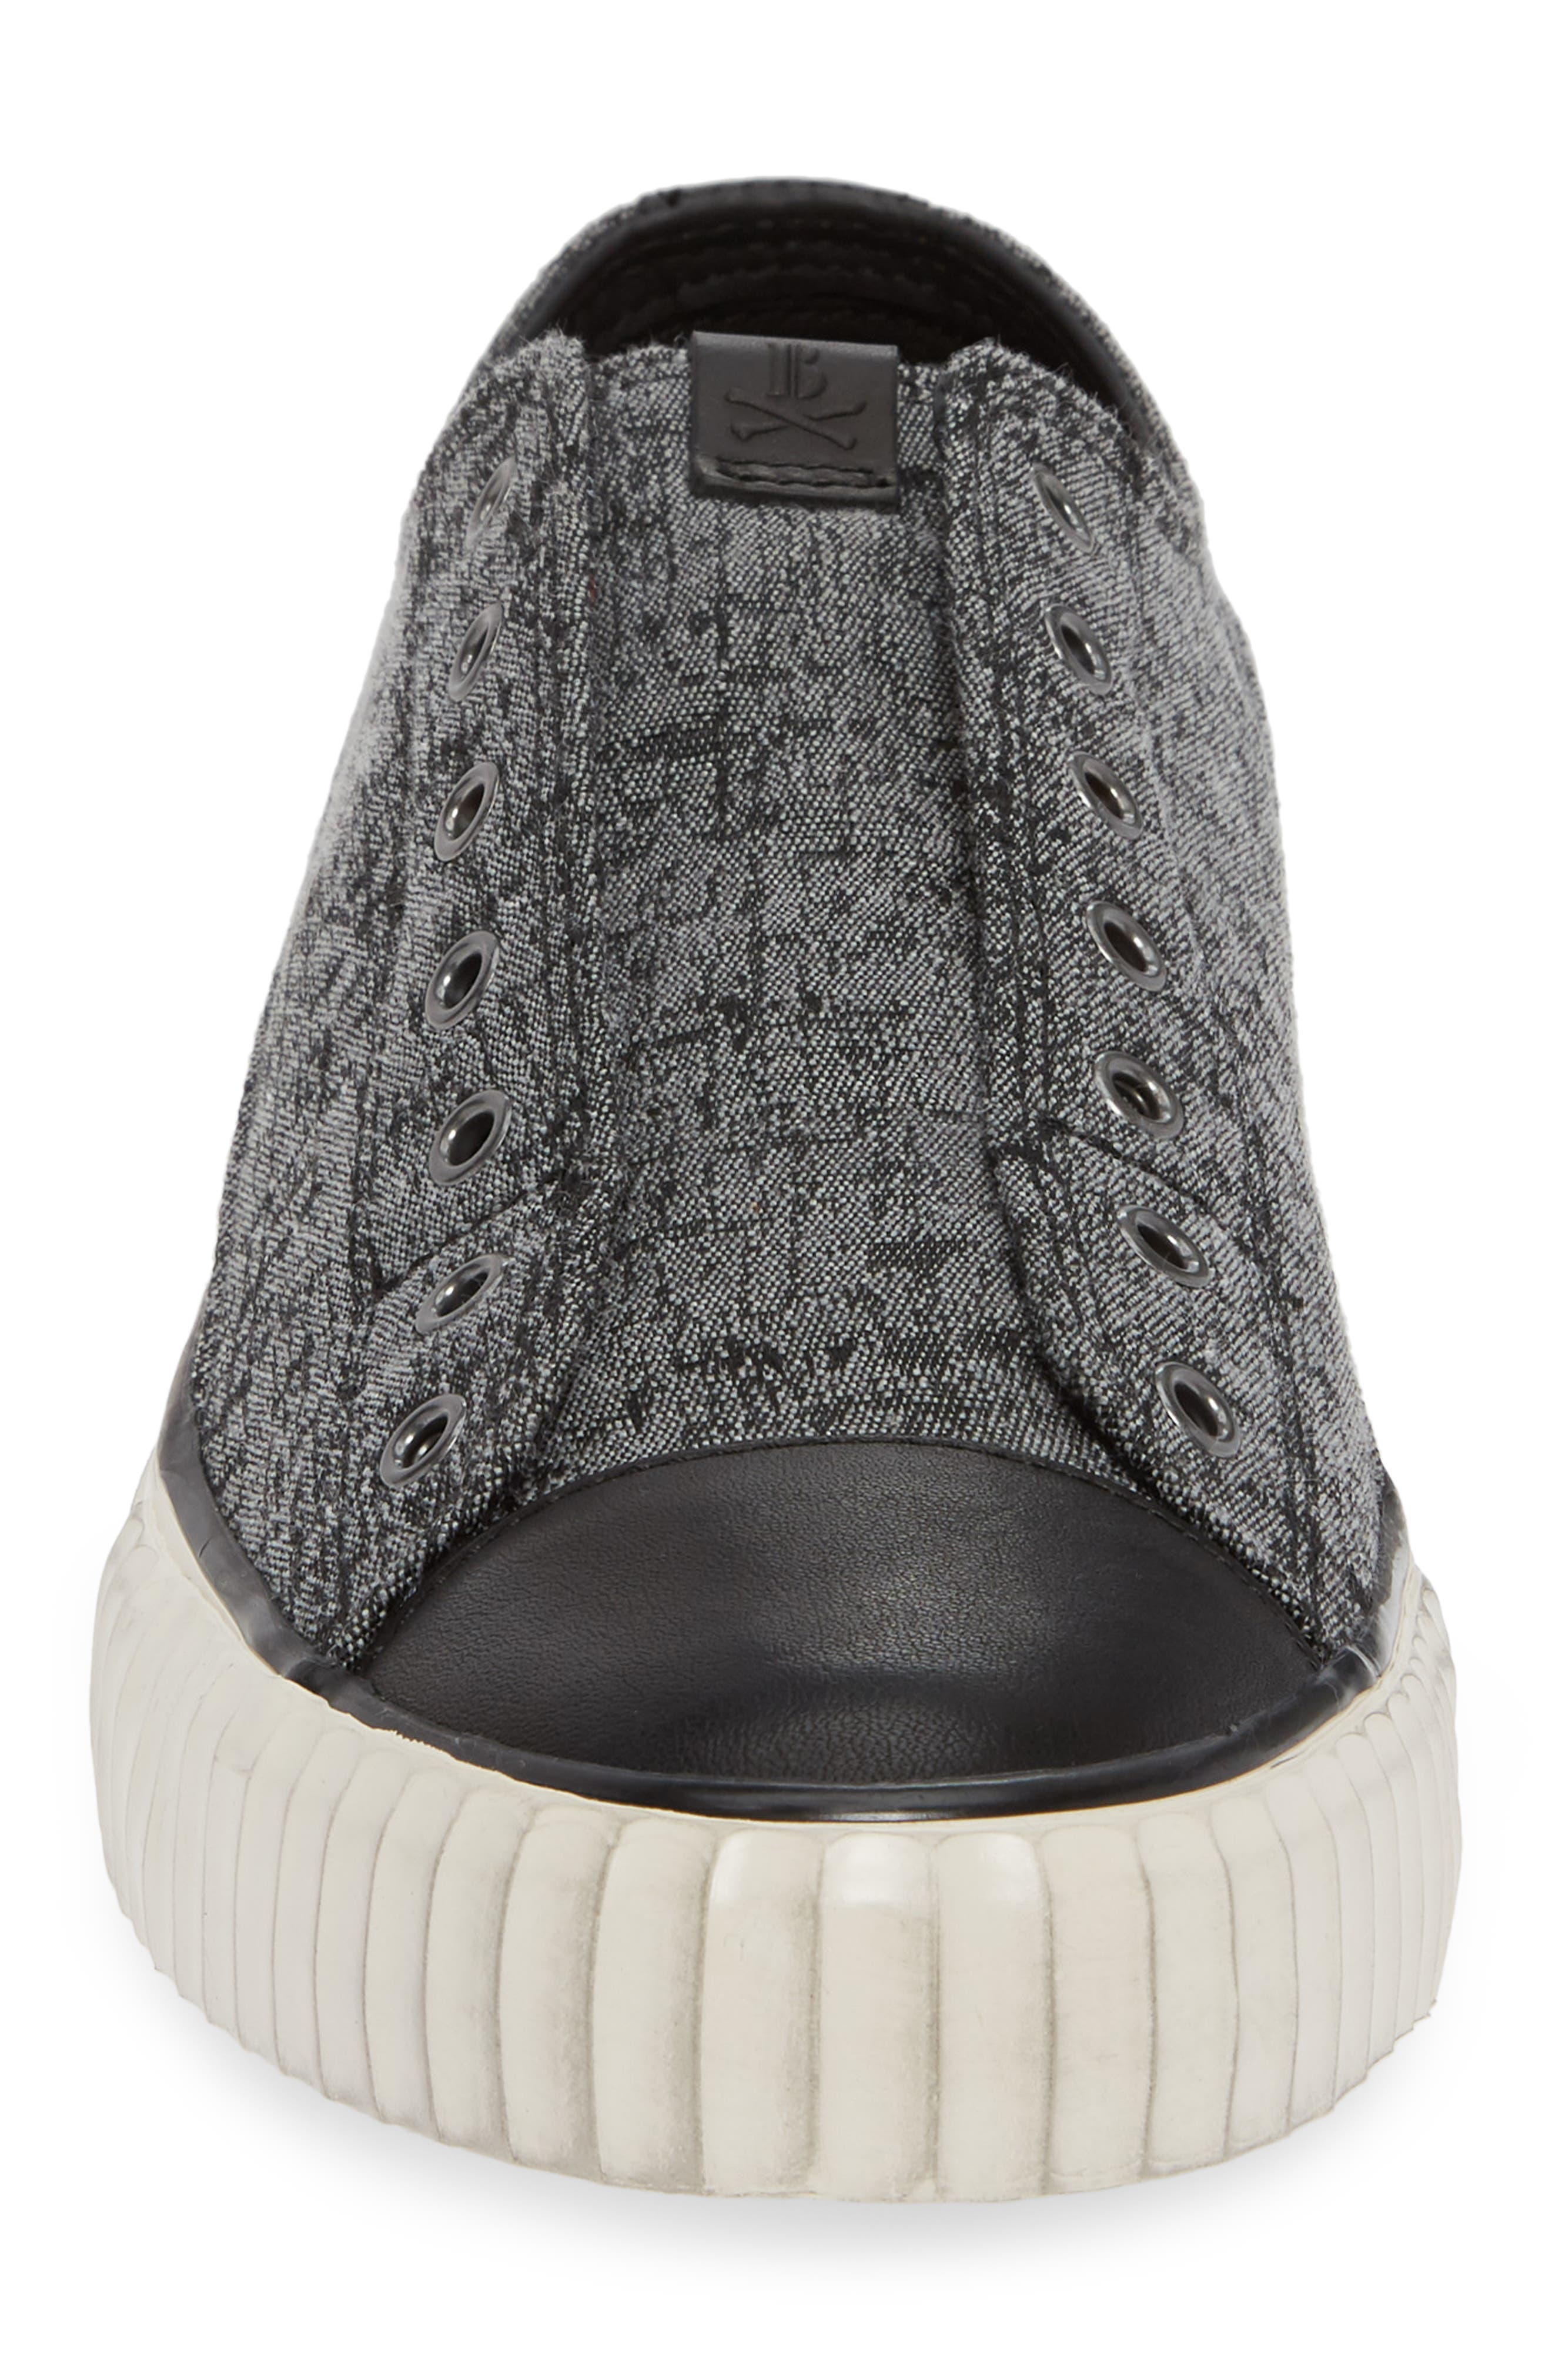 BOOTLEG BY JOHN VARVATOS, John Varvatos Star USA Bootleg Laceless Sneaker, Alternate thumbnail 4, color, STONE GREY CANVAS